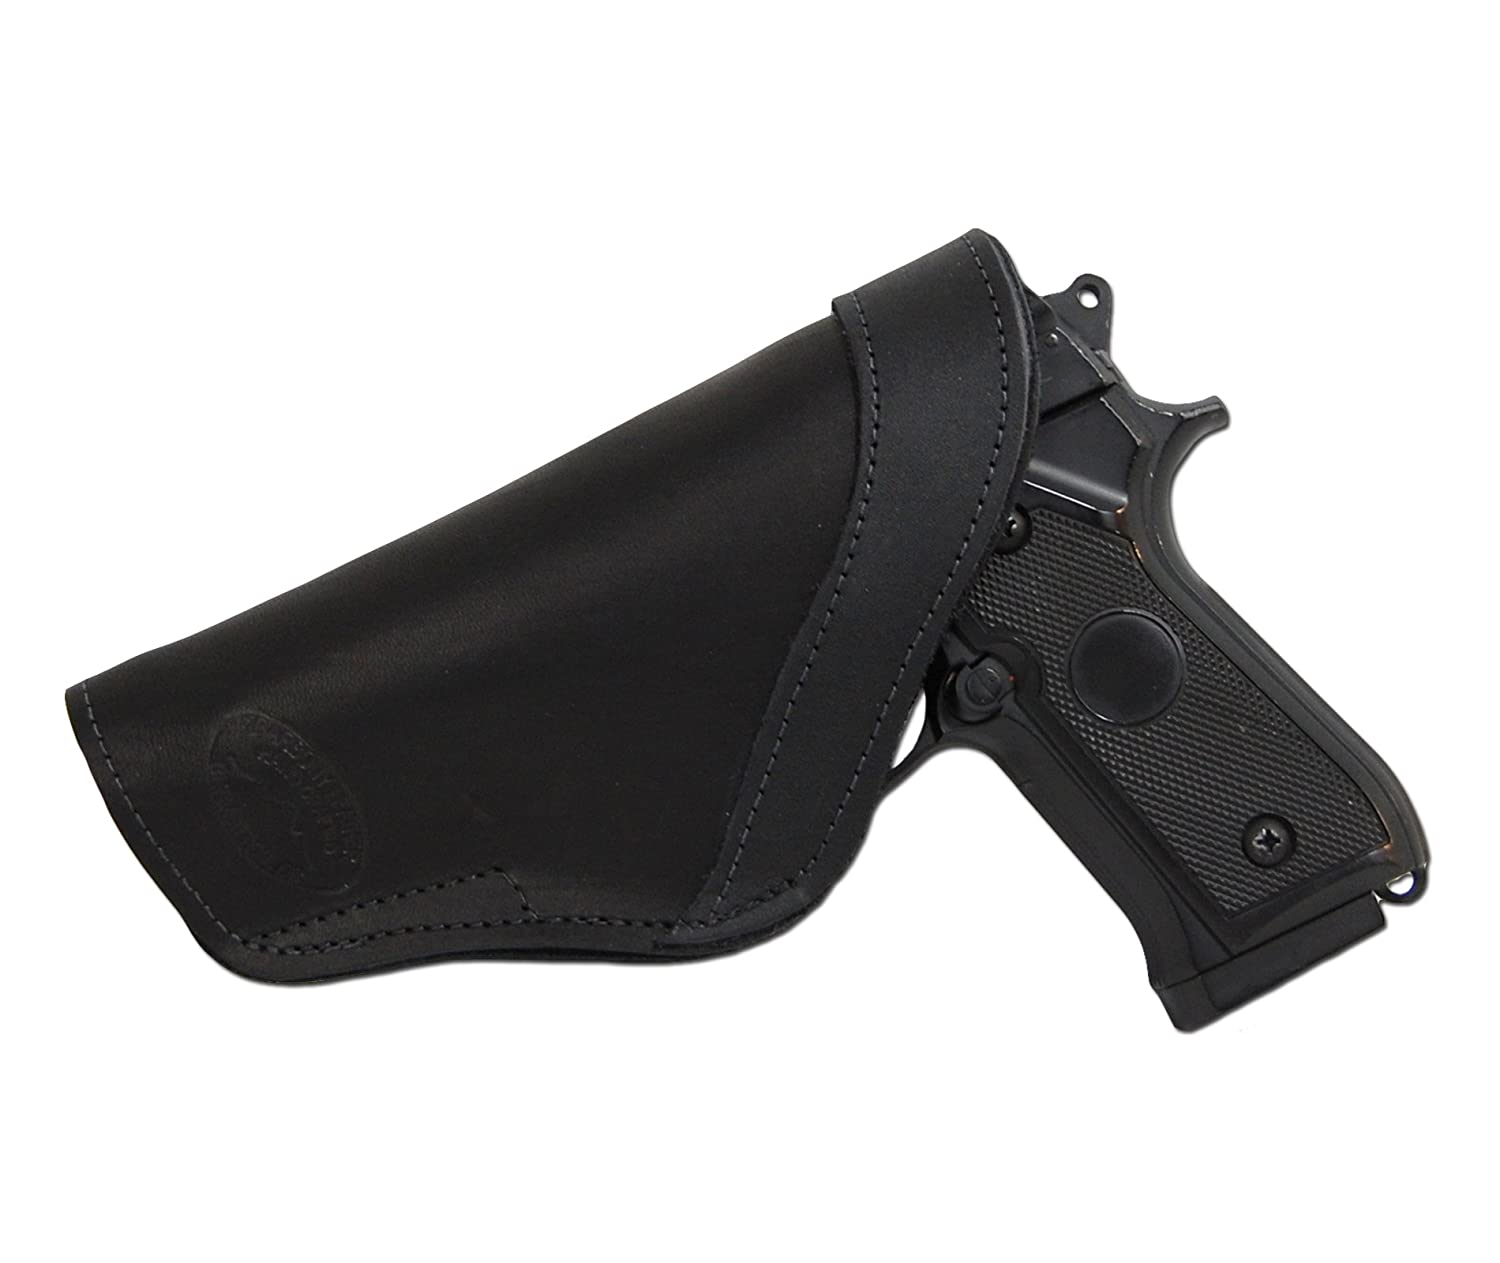 NEW Barsony Black Leather Single Mag Pouch Sig Walther Makarov 380 /& Ultra Comp